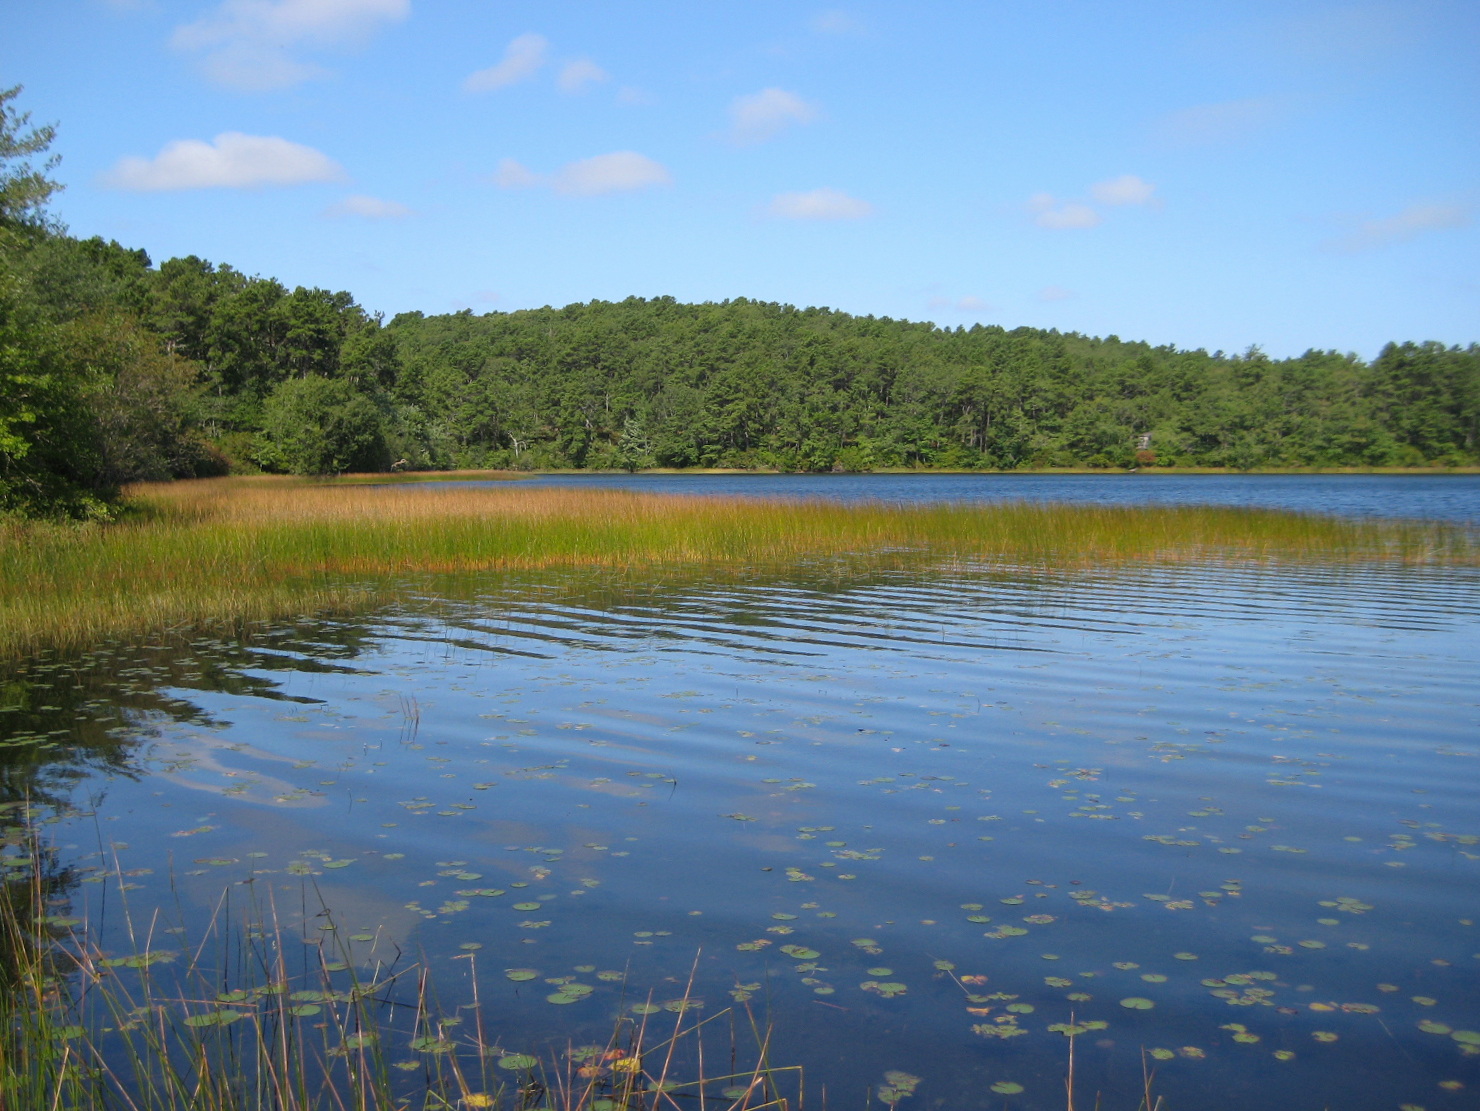 A view of a kettle pond shoreline at Cape Cod National Seashore.